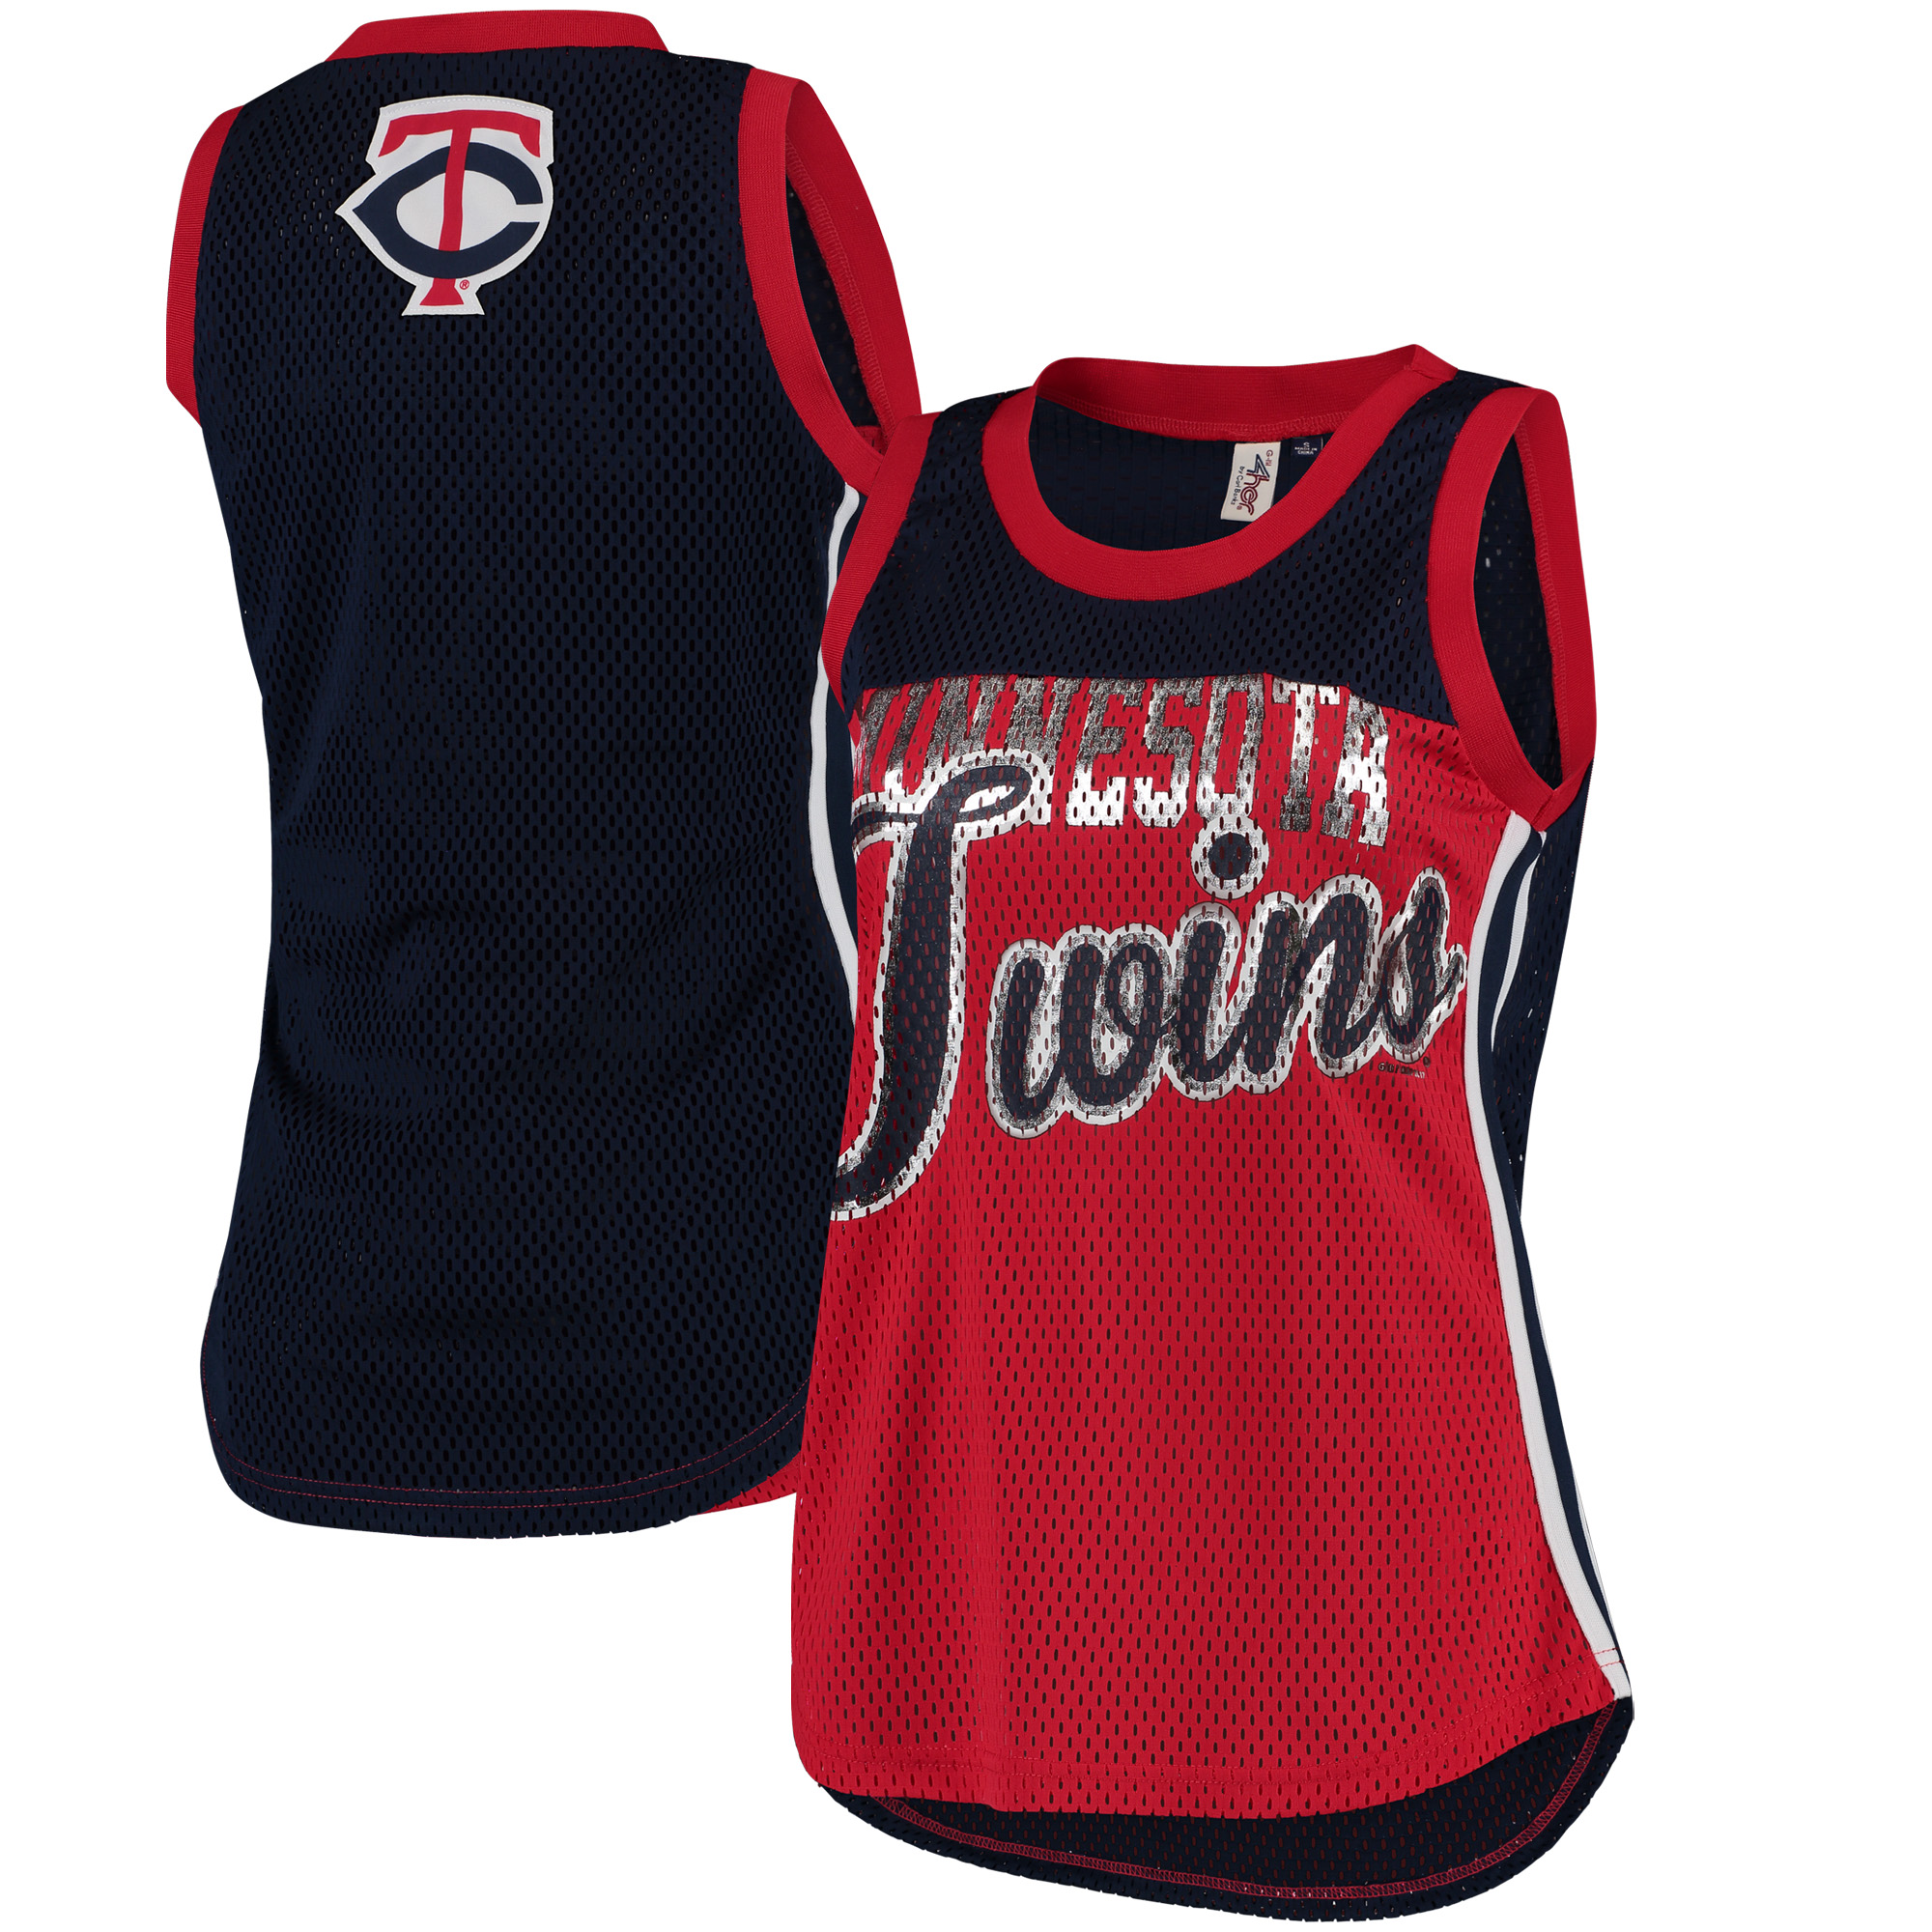 Minnesota Twins G-III 4Her by Carl Banks Women's Championship Tank Top - Red/Navy